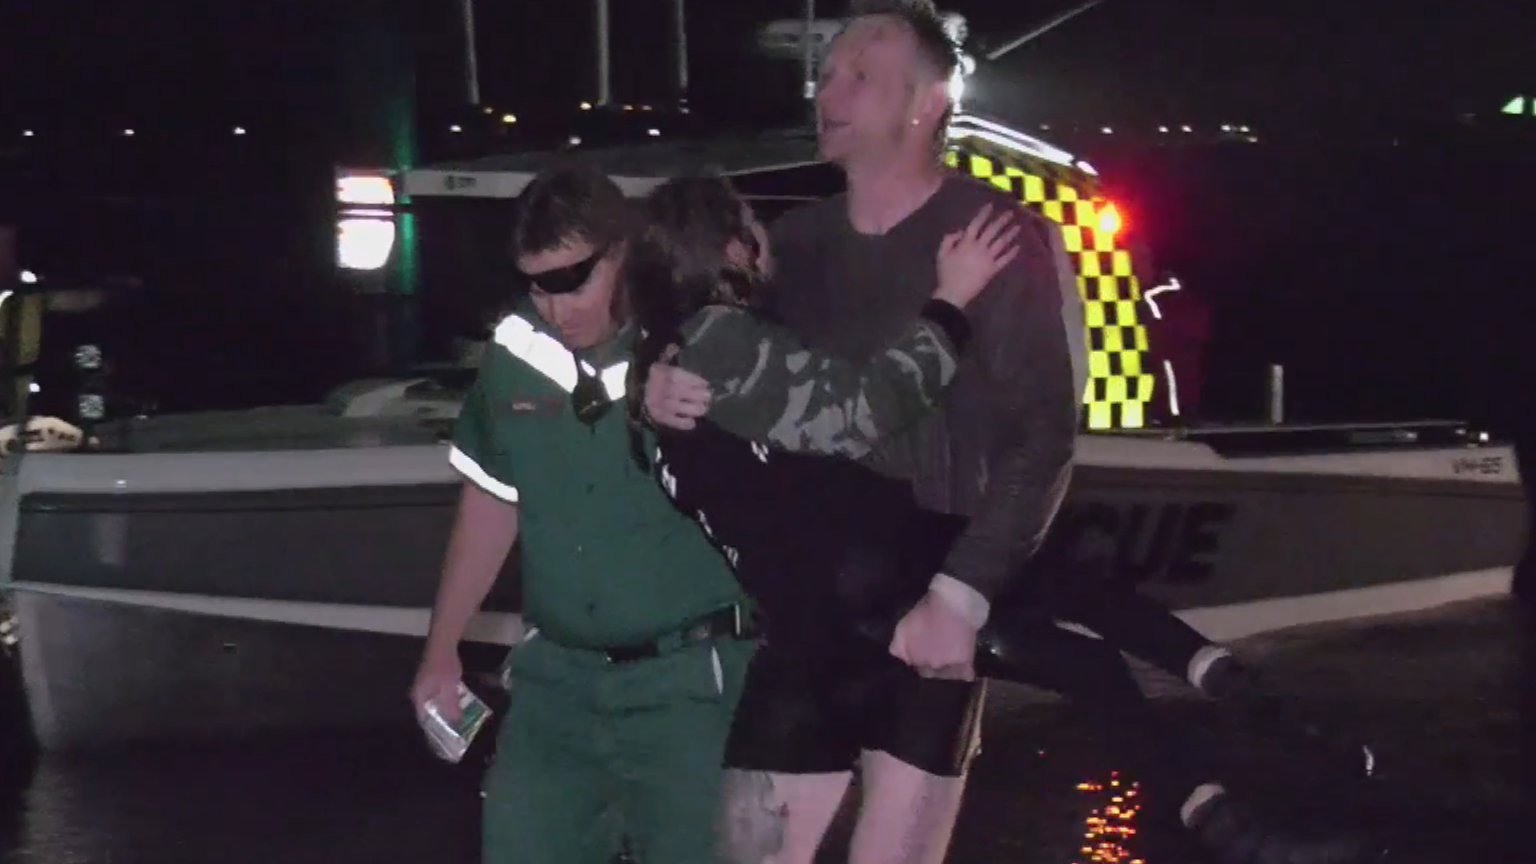 Trio rescued after boat capsizes in freezing water